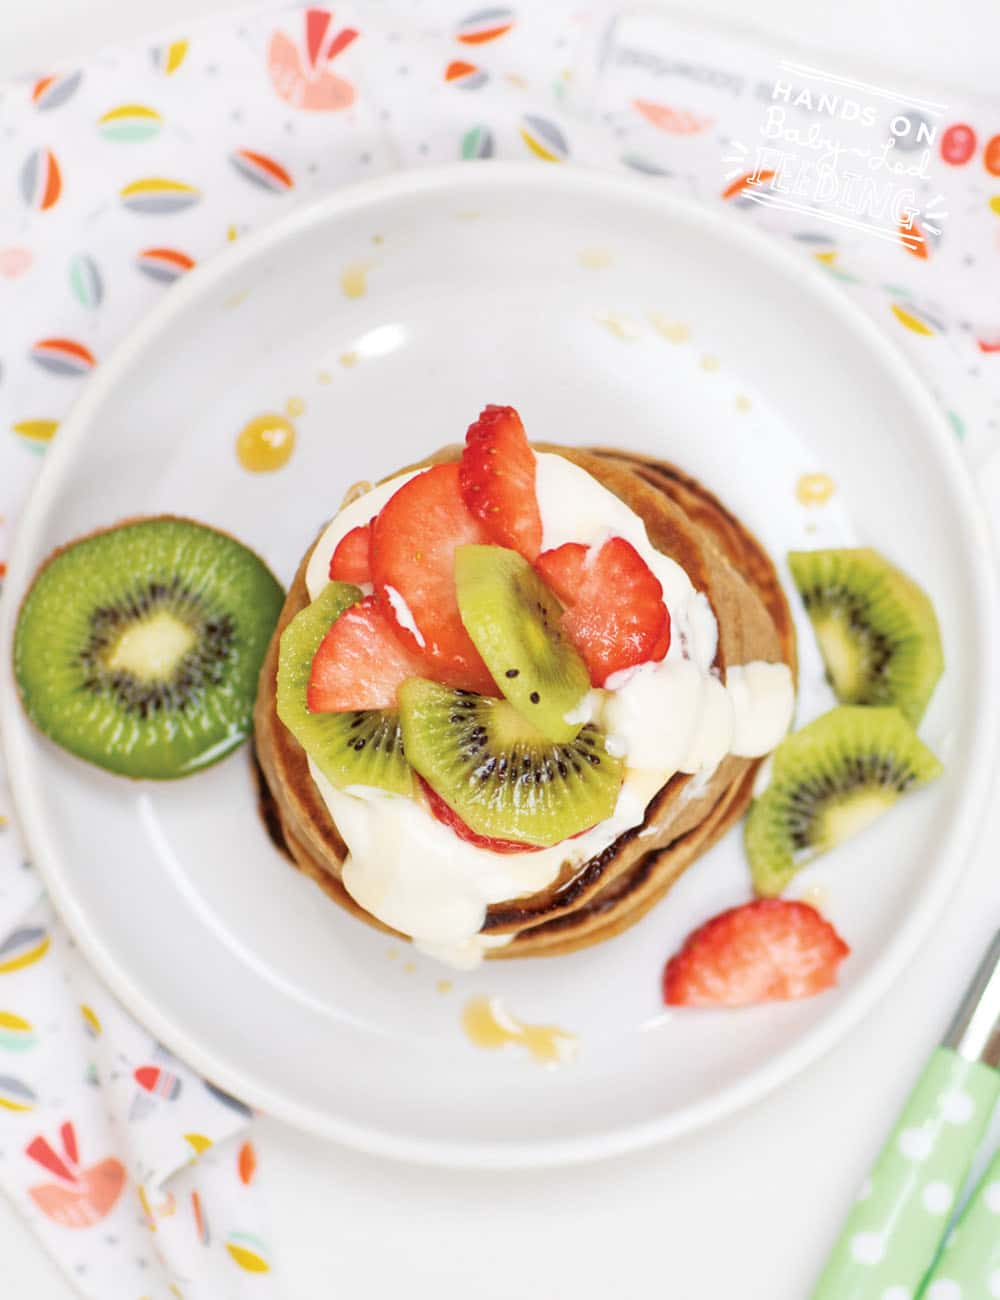 An easy & healthy idea for baby breakfast that can be made all in one blender! Made with nutritious oats and yummy strawberries, kiwi, and banana, this baby pancake is great for 6 mo+! Naturally sweetened with fruit, this healthy baby breakfast is refined sugar-free.